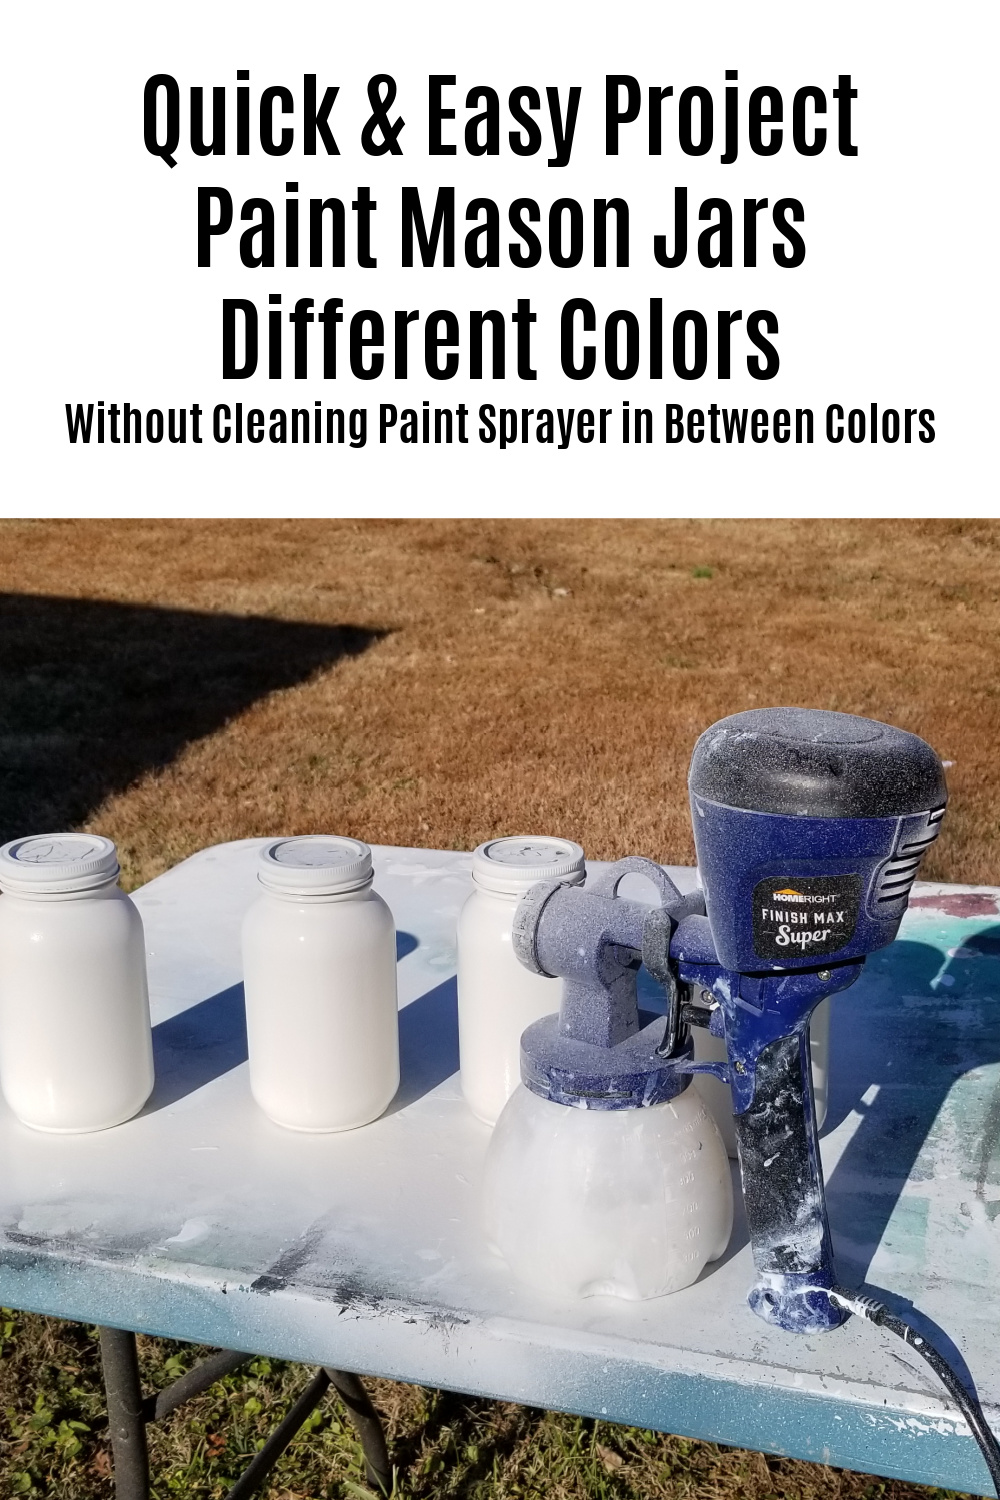 Here's a fun and easy way of painting mason jars FOUR different colors without changing out your paint cup or cleaning your paint sprayer. #MyRepurposedLife #repurposed #painting #masonjars #easy #diy via @repurposedlife